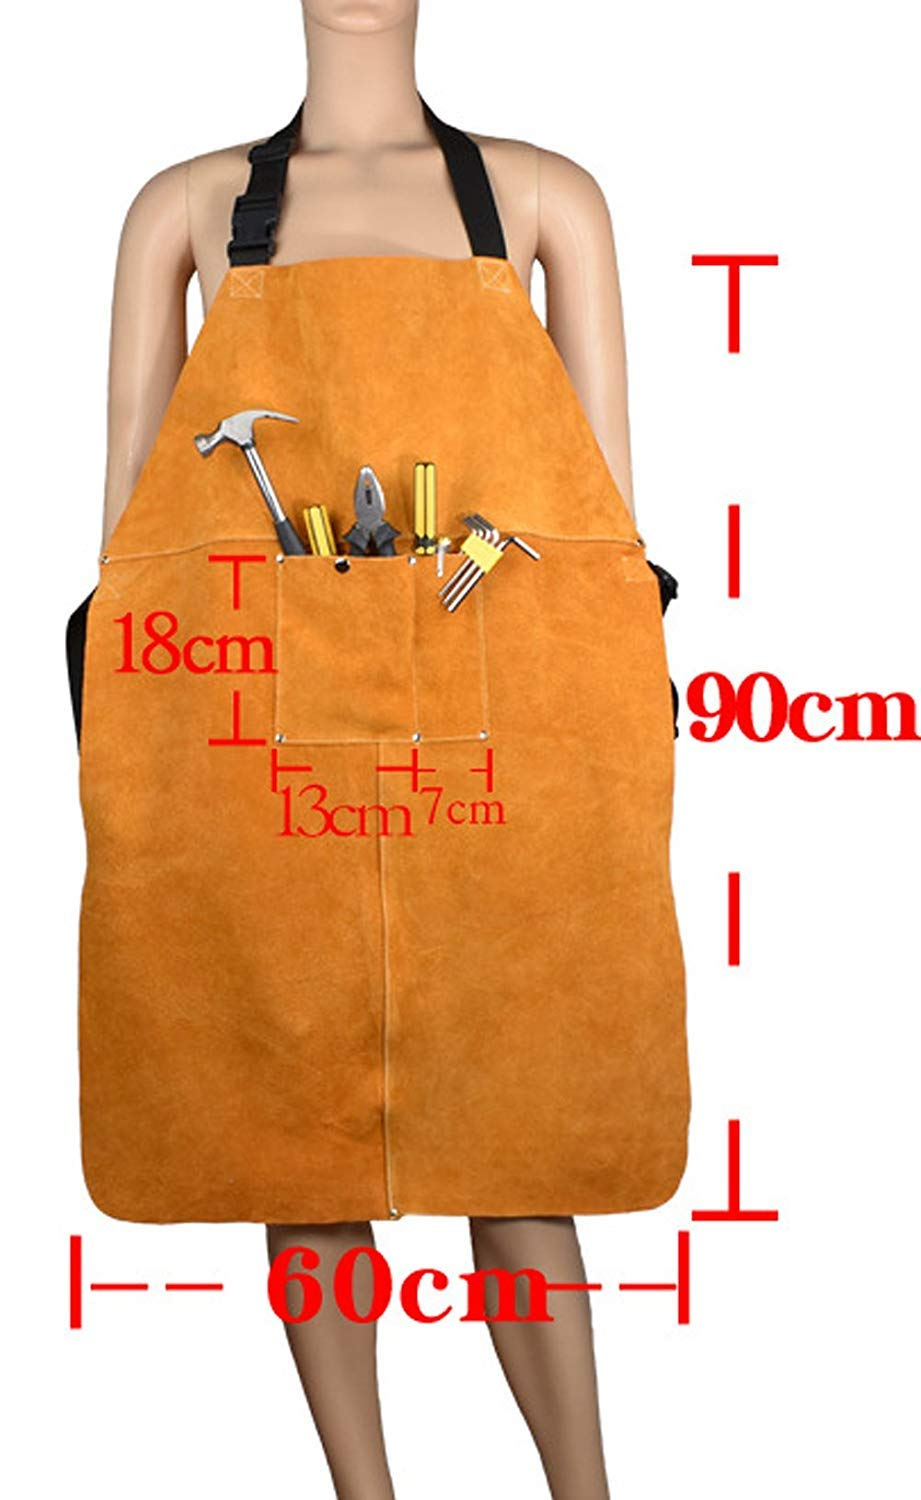 Leather Welding Apron Blacksmith Apron, Heavy Duty Flame Retardant Welder Work Apron, Unisex Adjustable Work Shop Protective Clothing, Carpentry, Torch Work, Roofing, Woodworking DHWQ03 by QEES (Image #2)